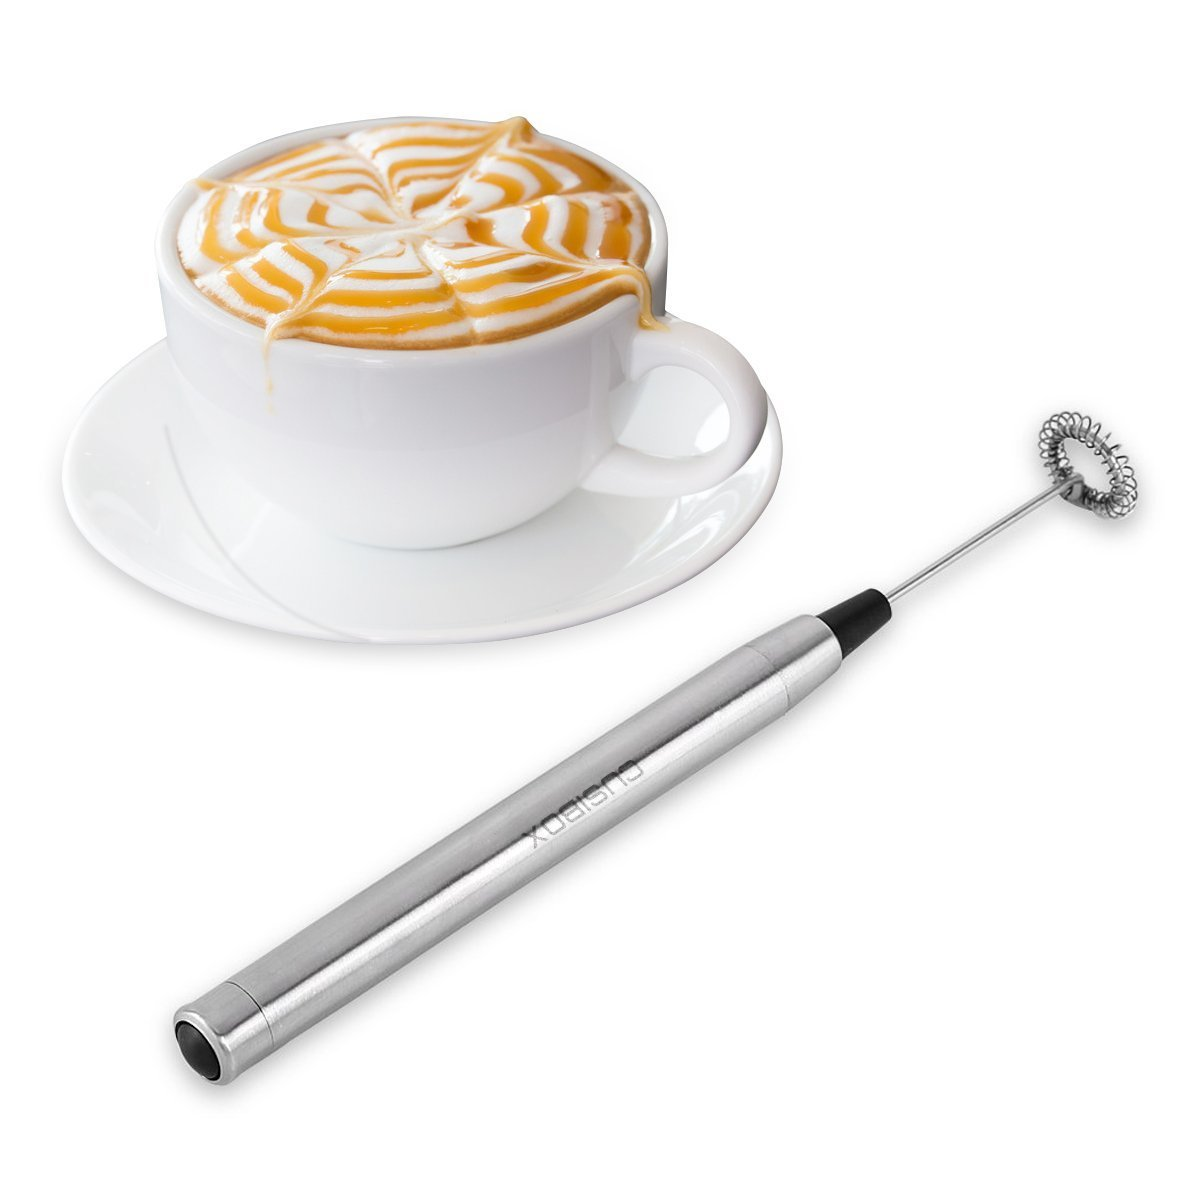 Milk Frother Handheld Electric Milk Frother Foam Maker Drink Mixer for Latte, Coffee, Cappuccino, Hot Chocolate